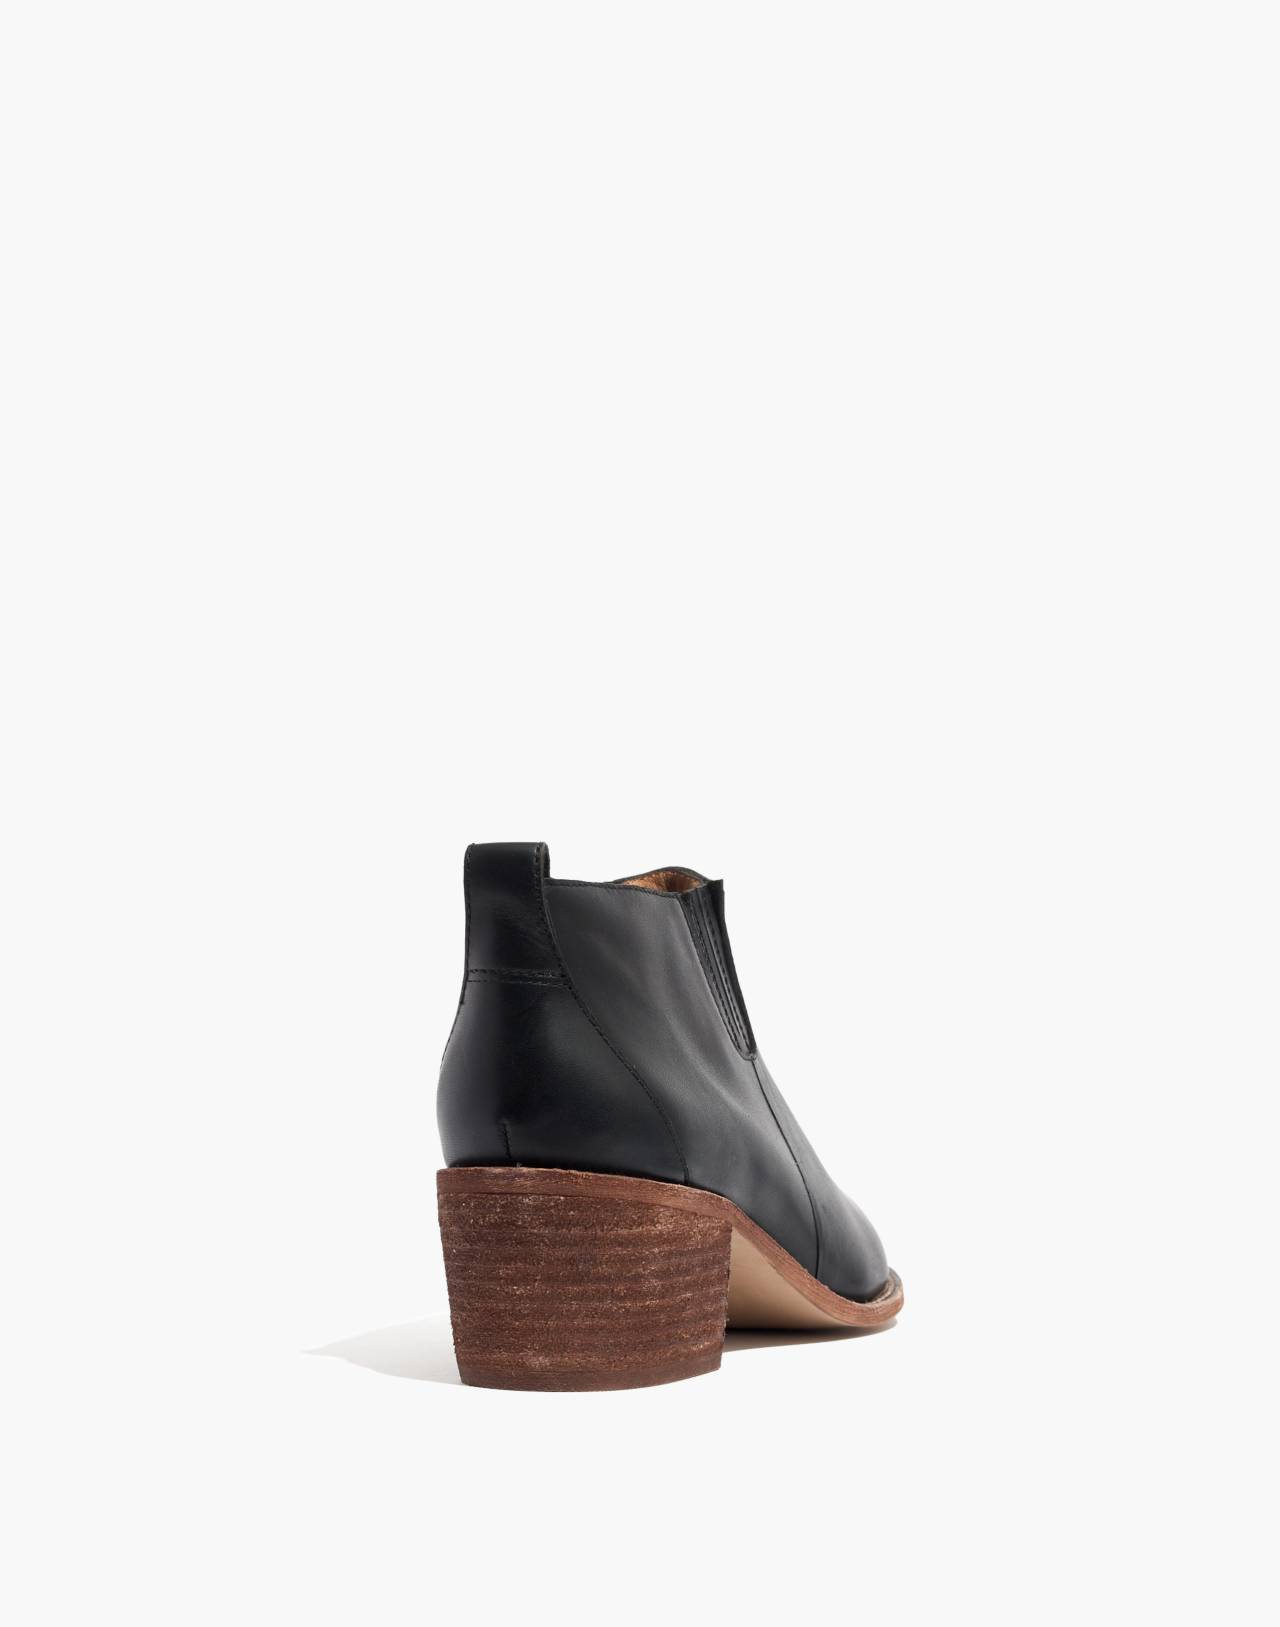 The Grayson Chelsea Boot in true black image 4